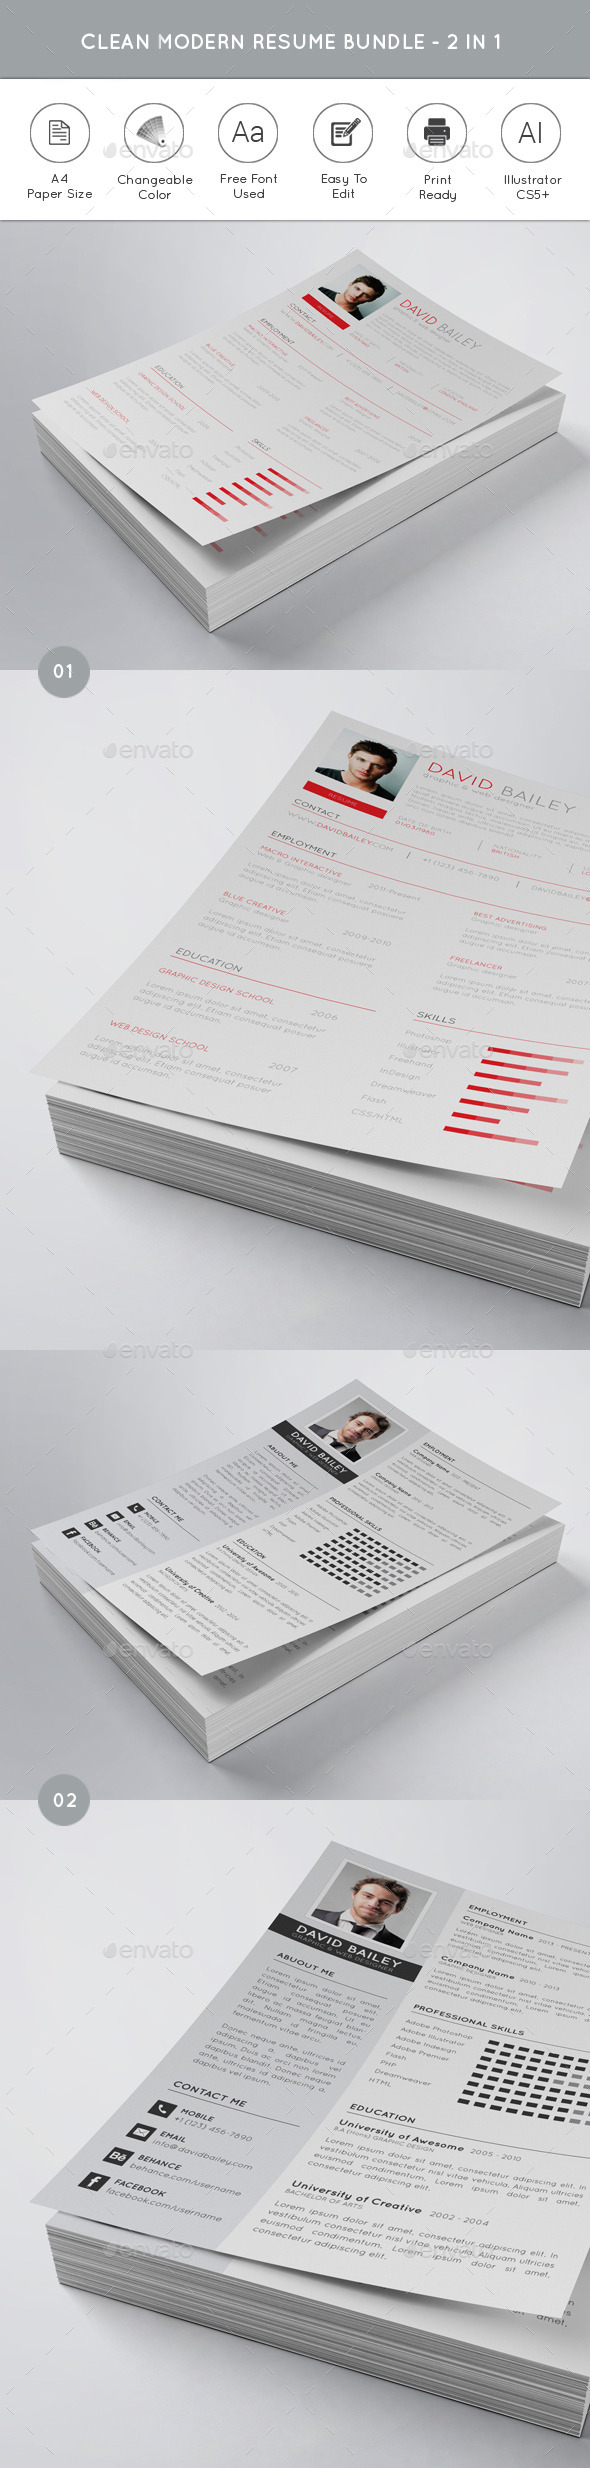 Clean Modern Resume Bundle - 2 in 1